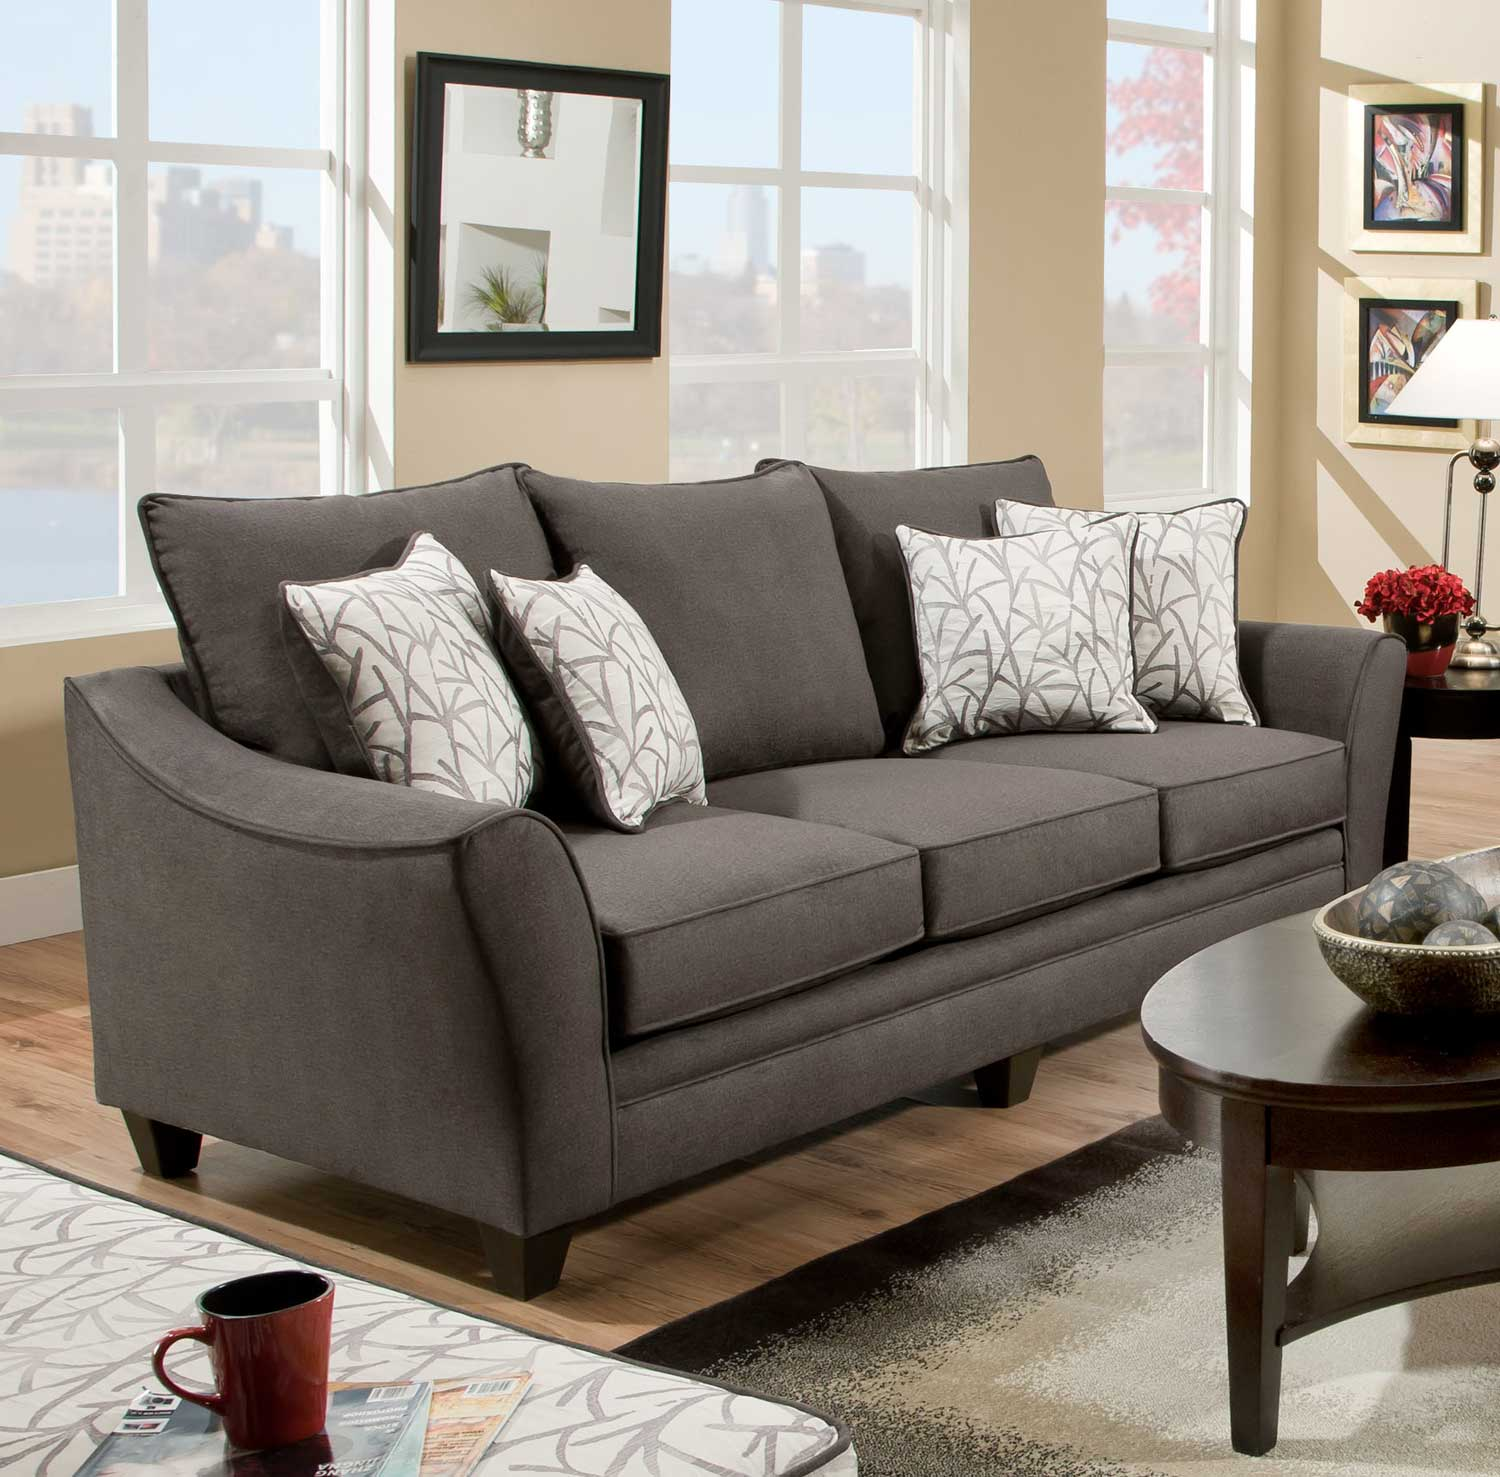 Chelsea Home Cupertino Sofa   Flannel Seal